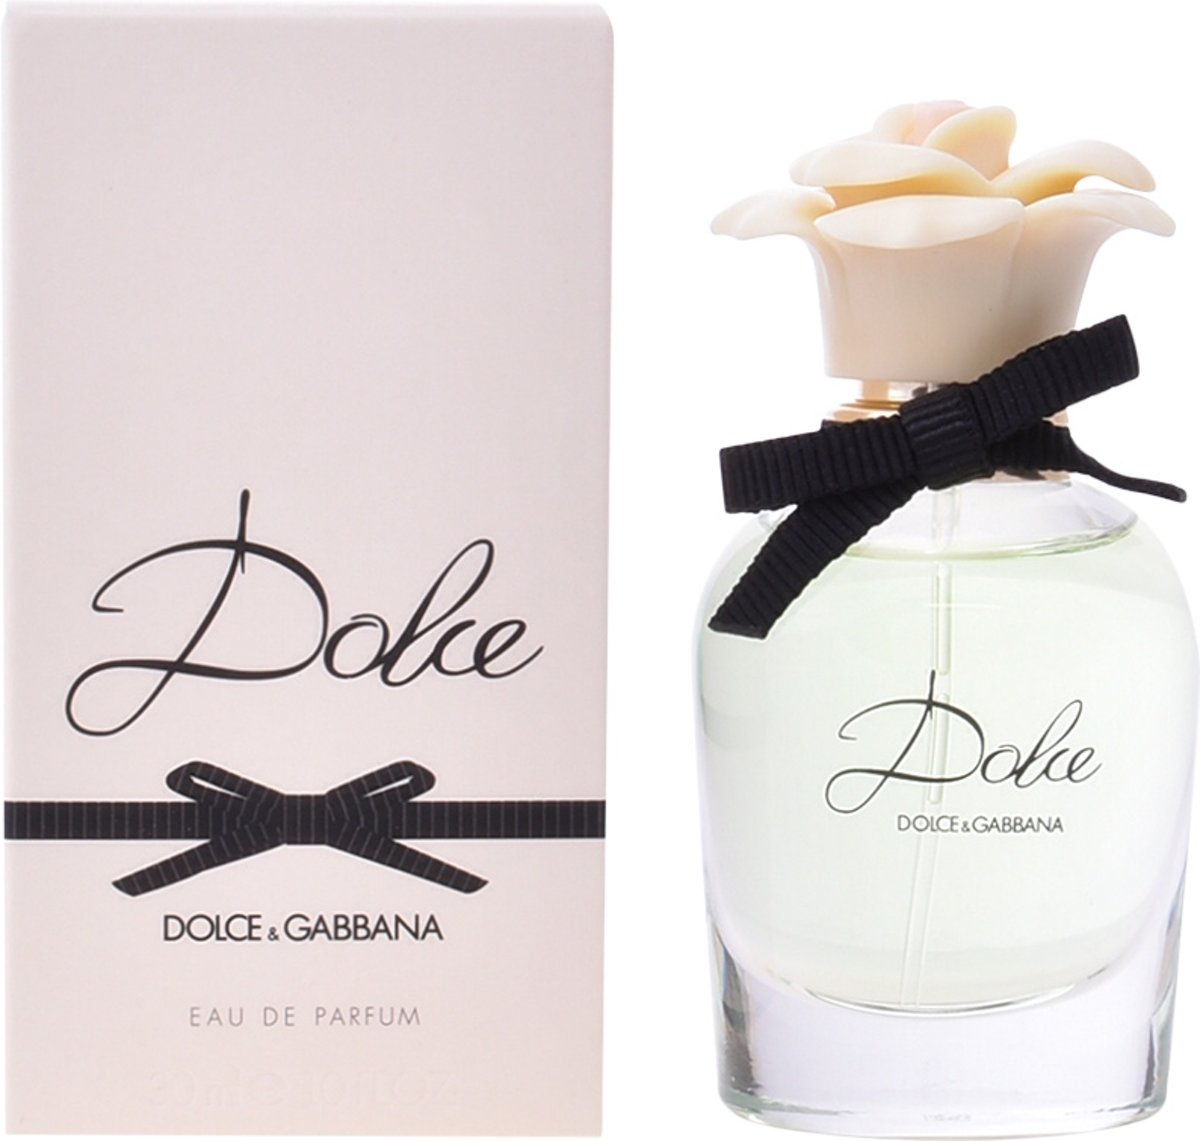 MULTI BUNDEL 2 stuks Dolce and Gabbana Dolce Eau De Perfume Spray 30ml